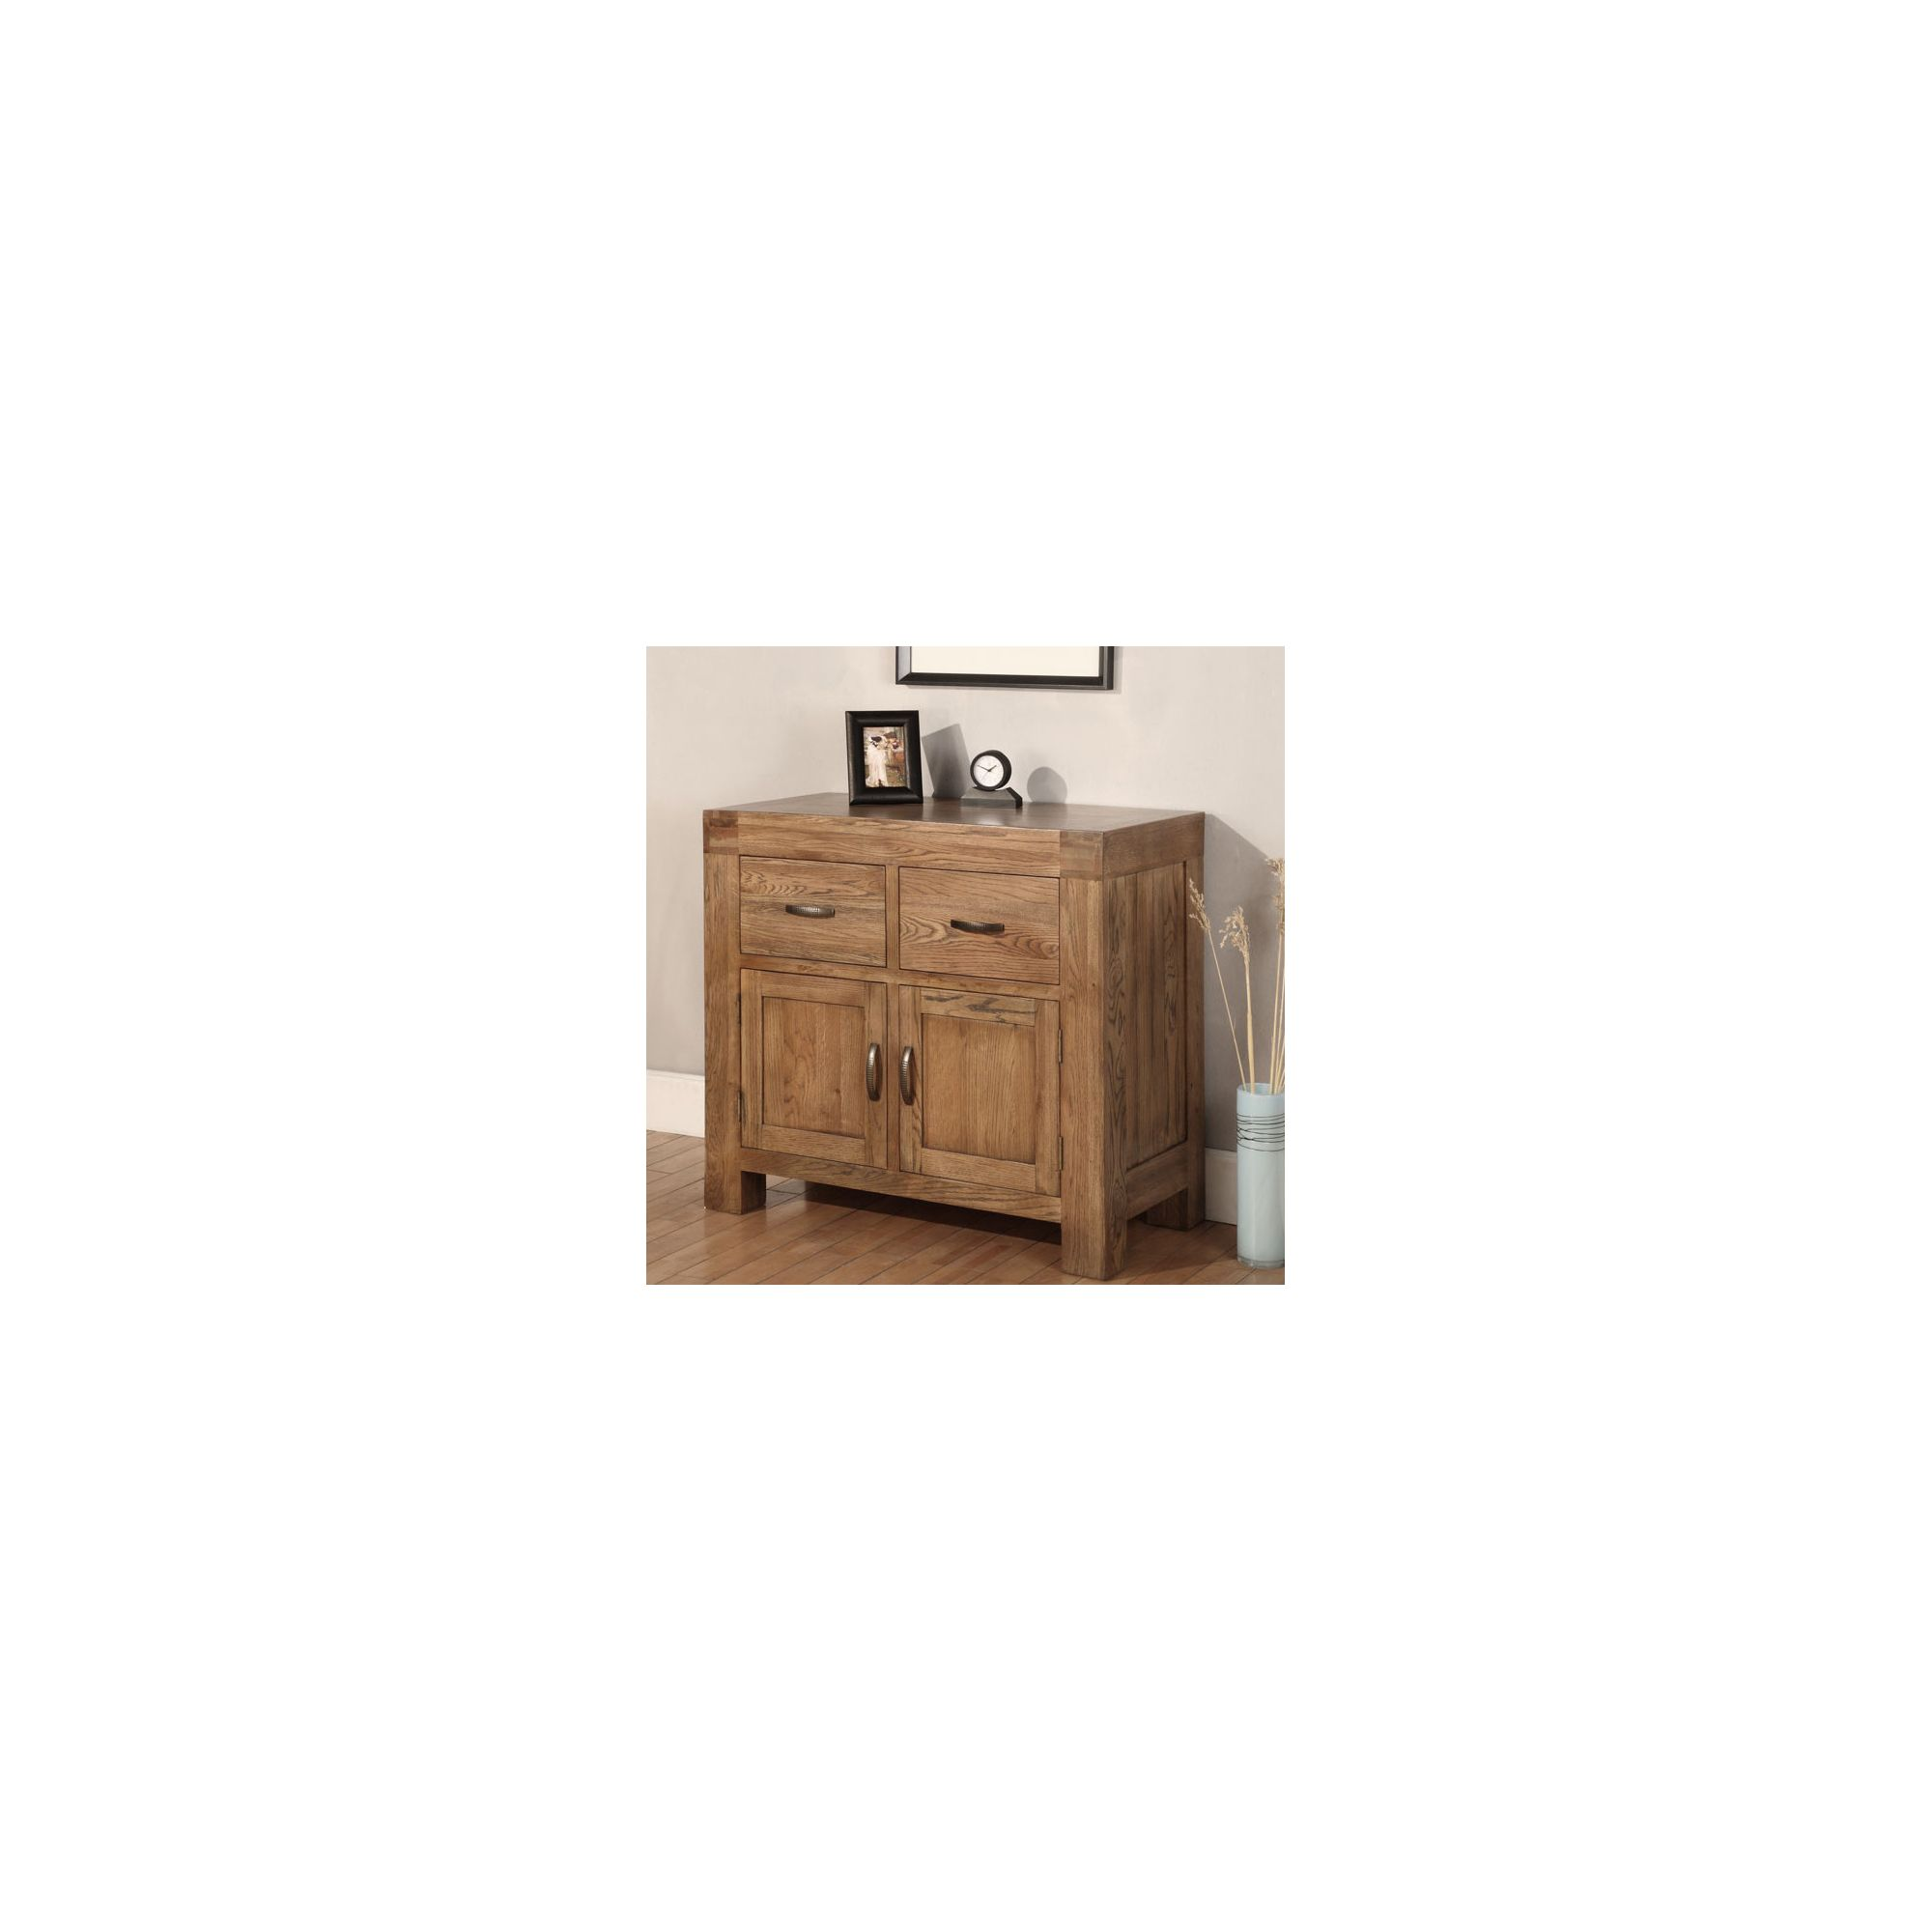 Hawkshead Santana 2 Drawer & 2 Door Dresser in Rich Patina at Tesco Direct